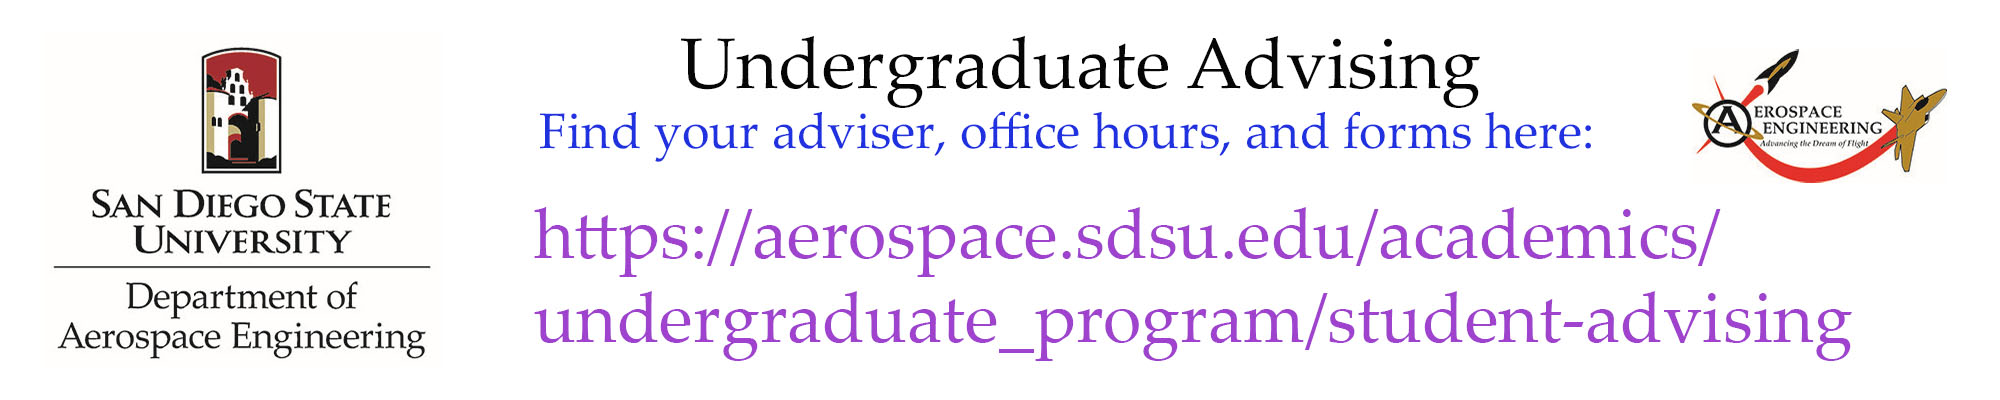 AE Undergraduate Advising: Office Hours, Advisers, forms (link)